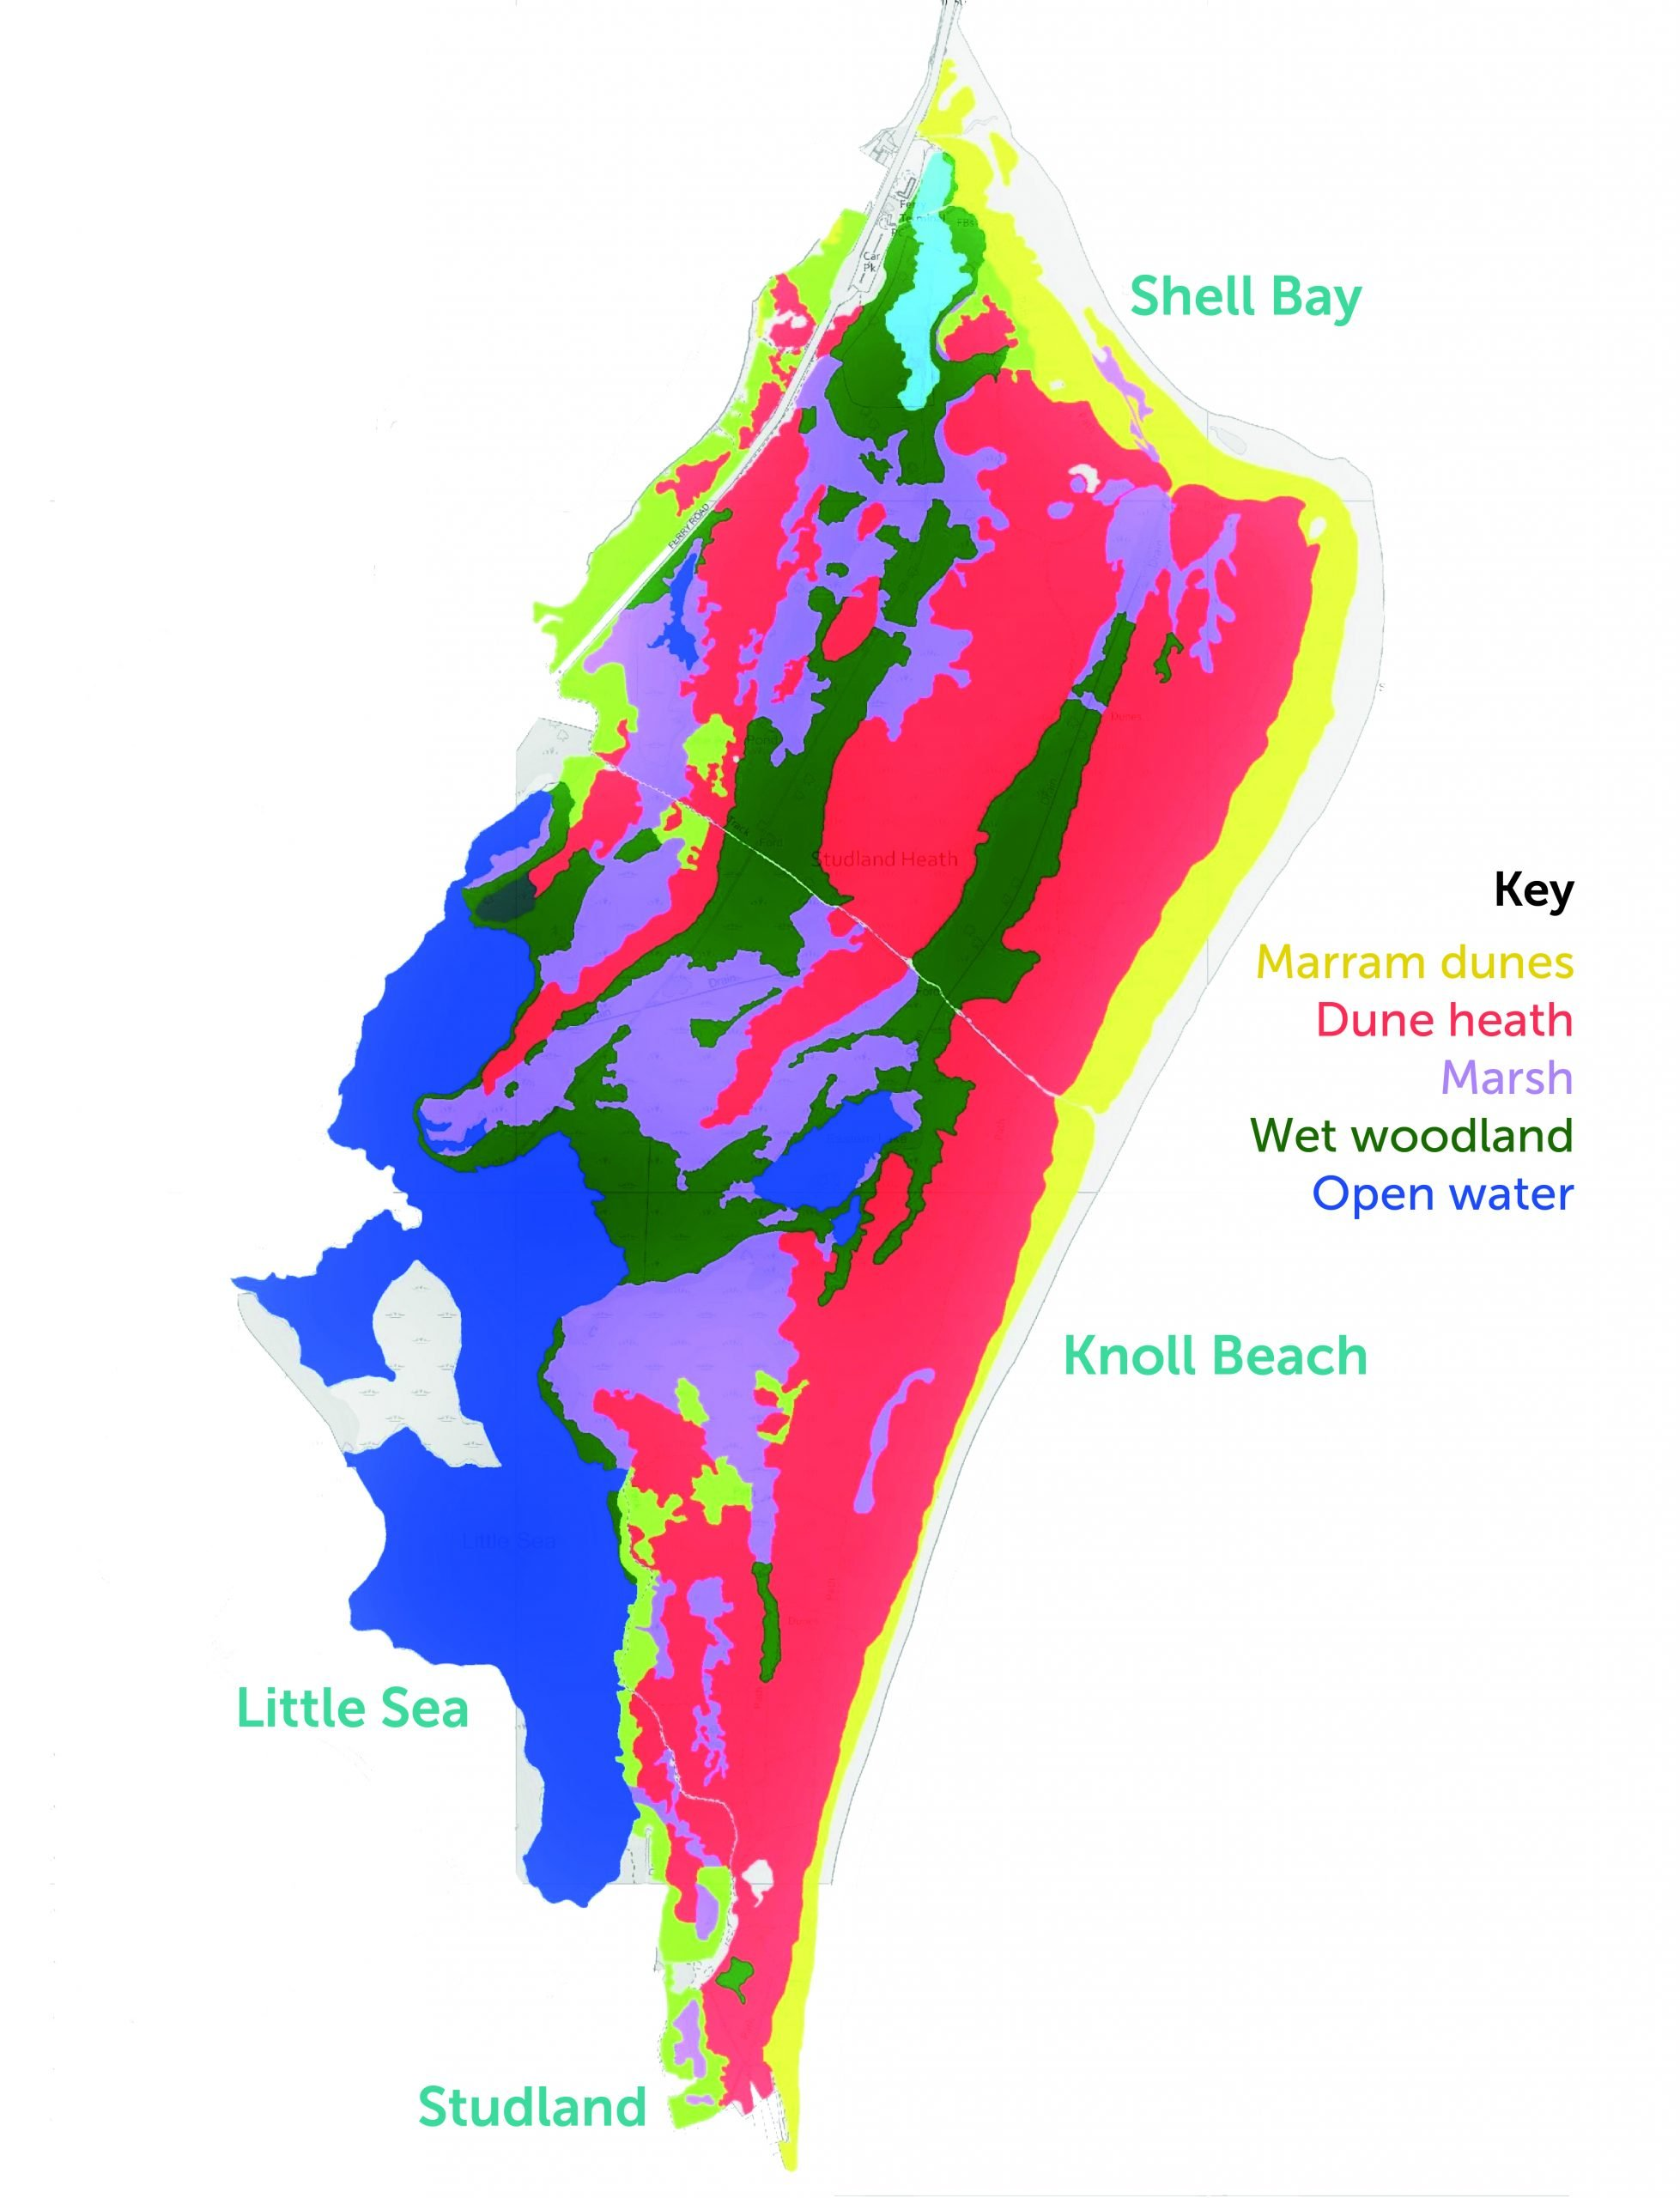 A colourful map of Studland bay